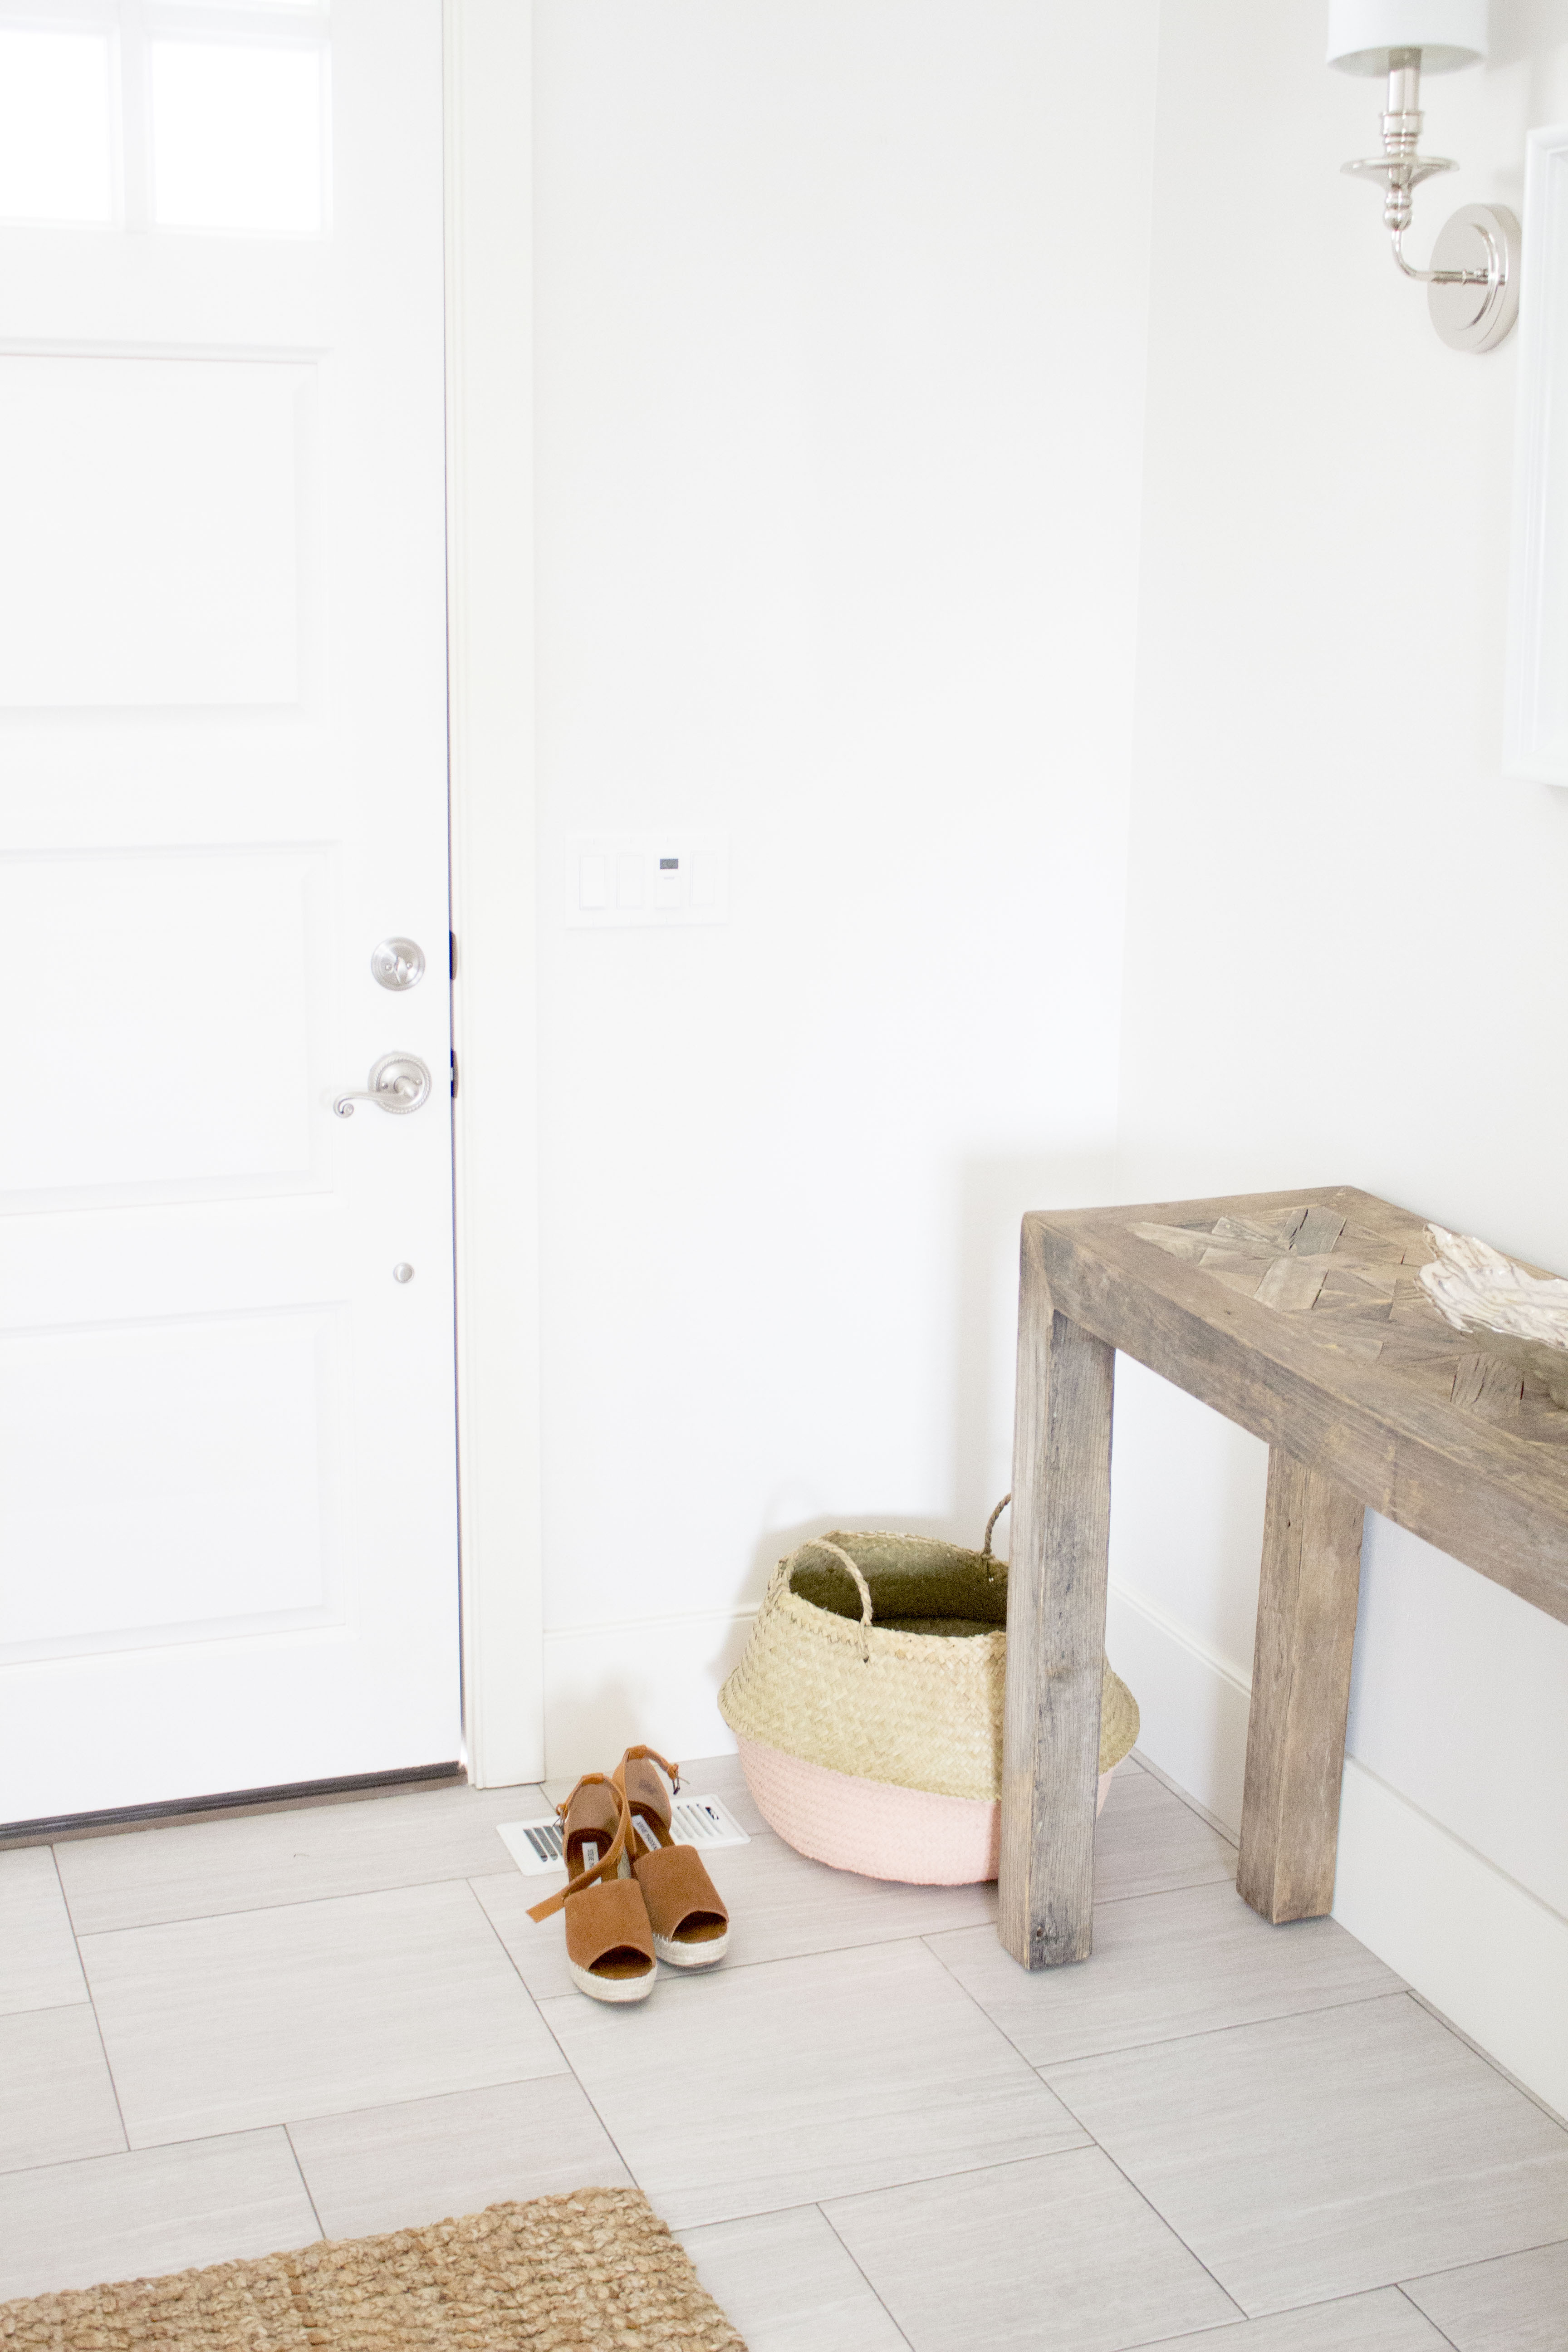 Spring Home Update + More Cute Tops!